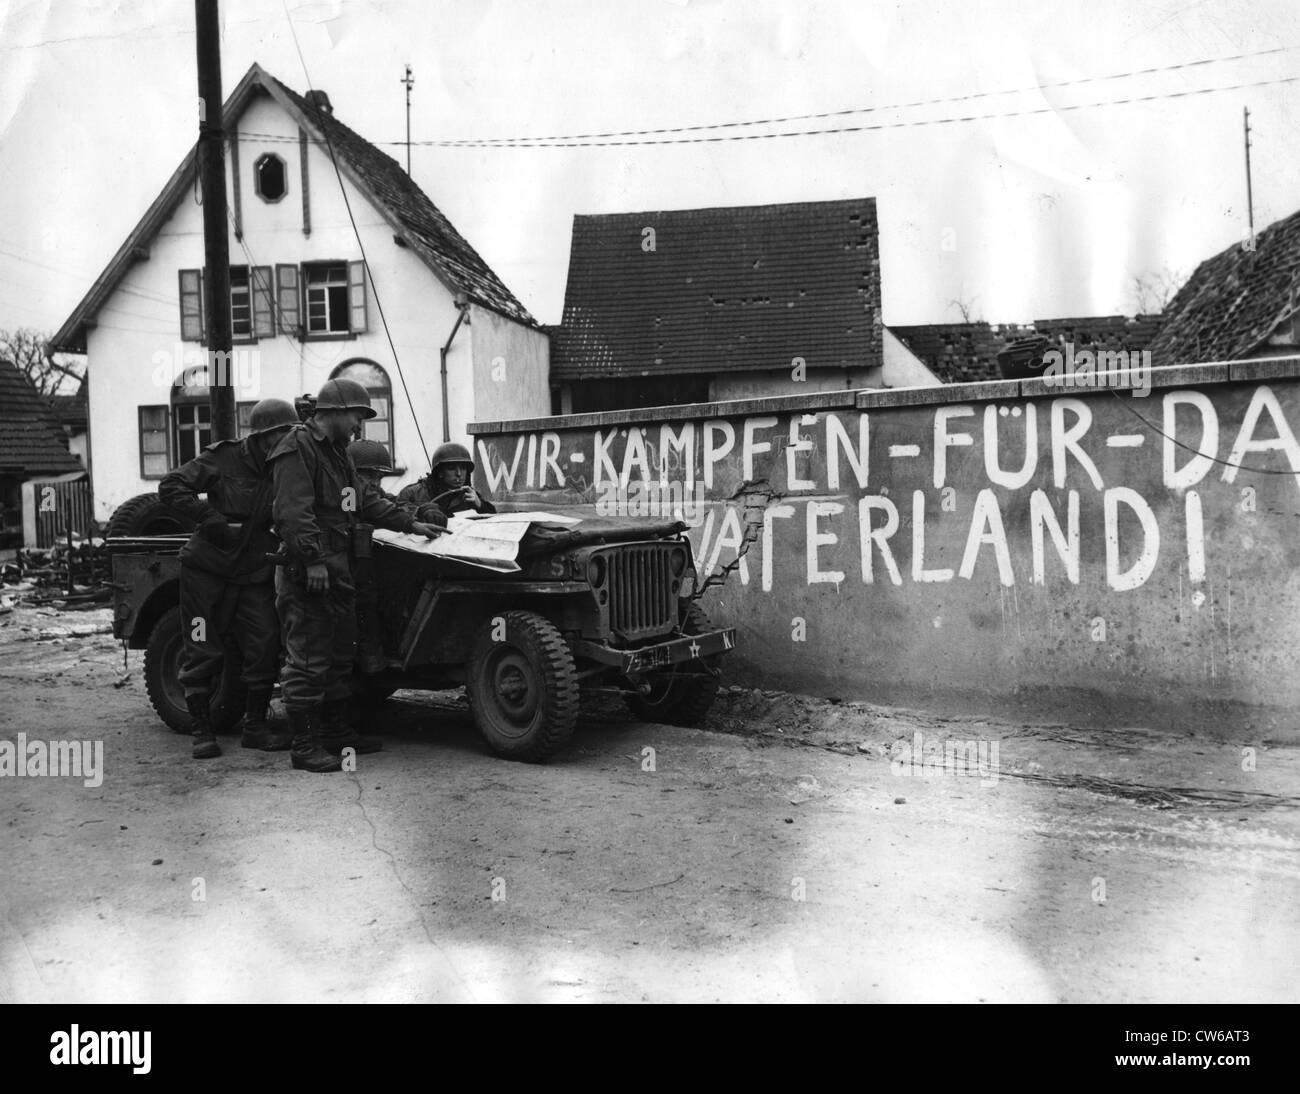 We fight for the Fatherland on a wall in Scheibenhardt (Germany) December 30, 1944 - Stock Image